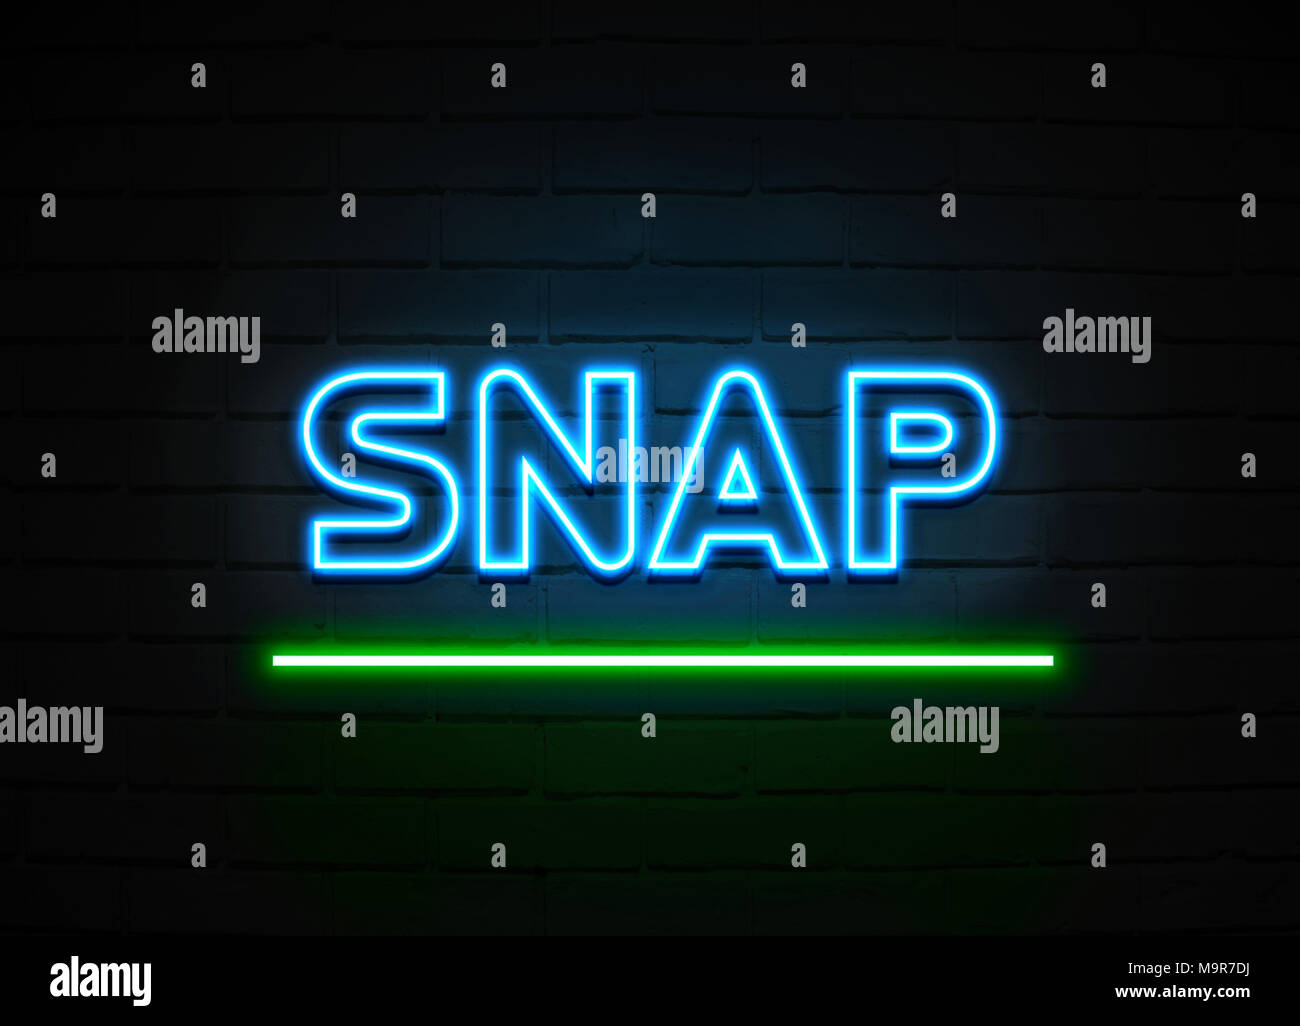 Snap Neon Sign Glowing Neon Sign On Brickwall Wall 3d Rendered Royalty Free Stock Illustration Stock Photo Alamy